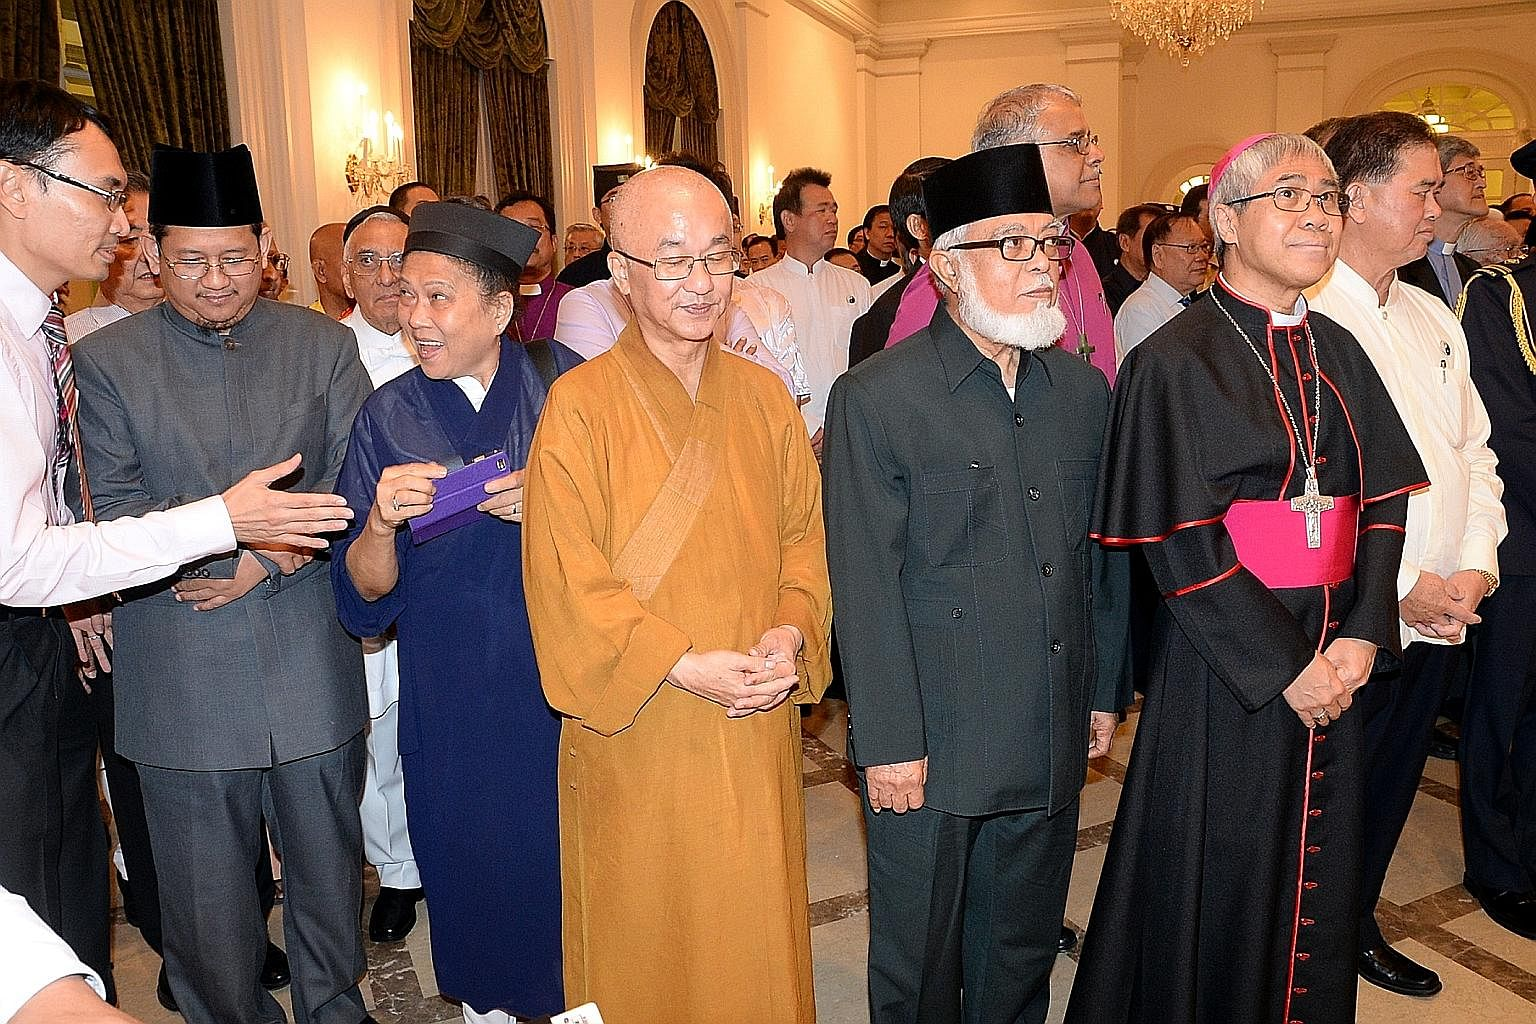 Leaders of the main faiths in Singapore, including (second from left) Mufti Mohd Fatris Bakaram; a representative from the Taoist faith; Venerable Seck Kwang Phing; former Mufti Shaikh Syed Isa; Archbishop William Goh from the Catholic Church; and Mr